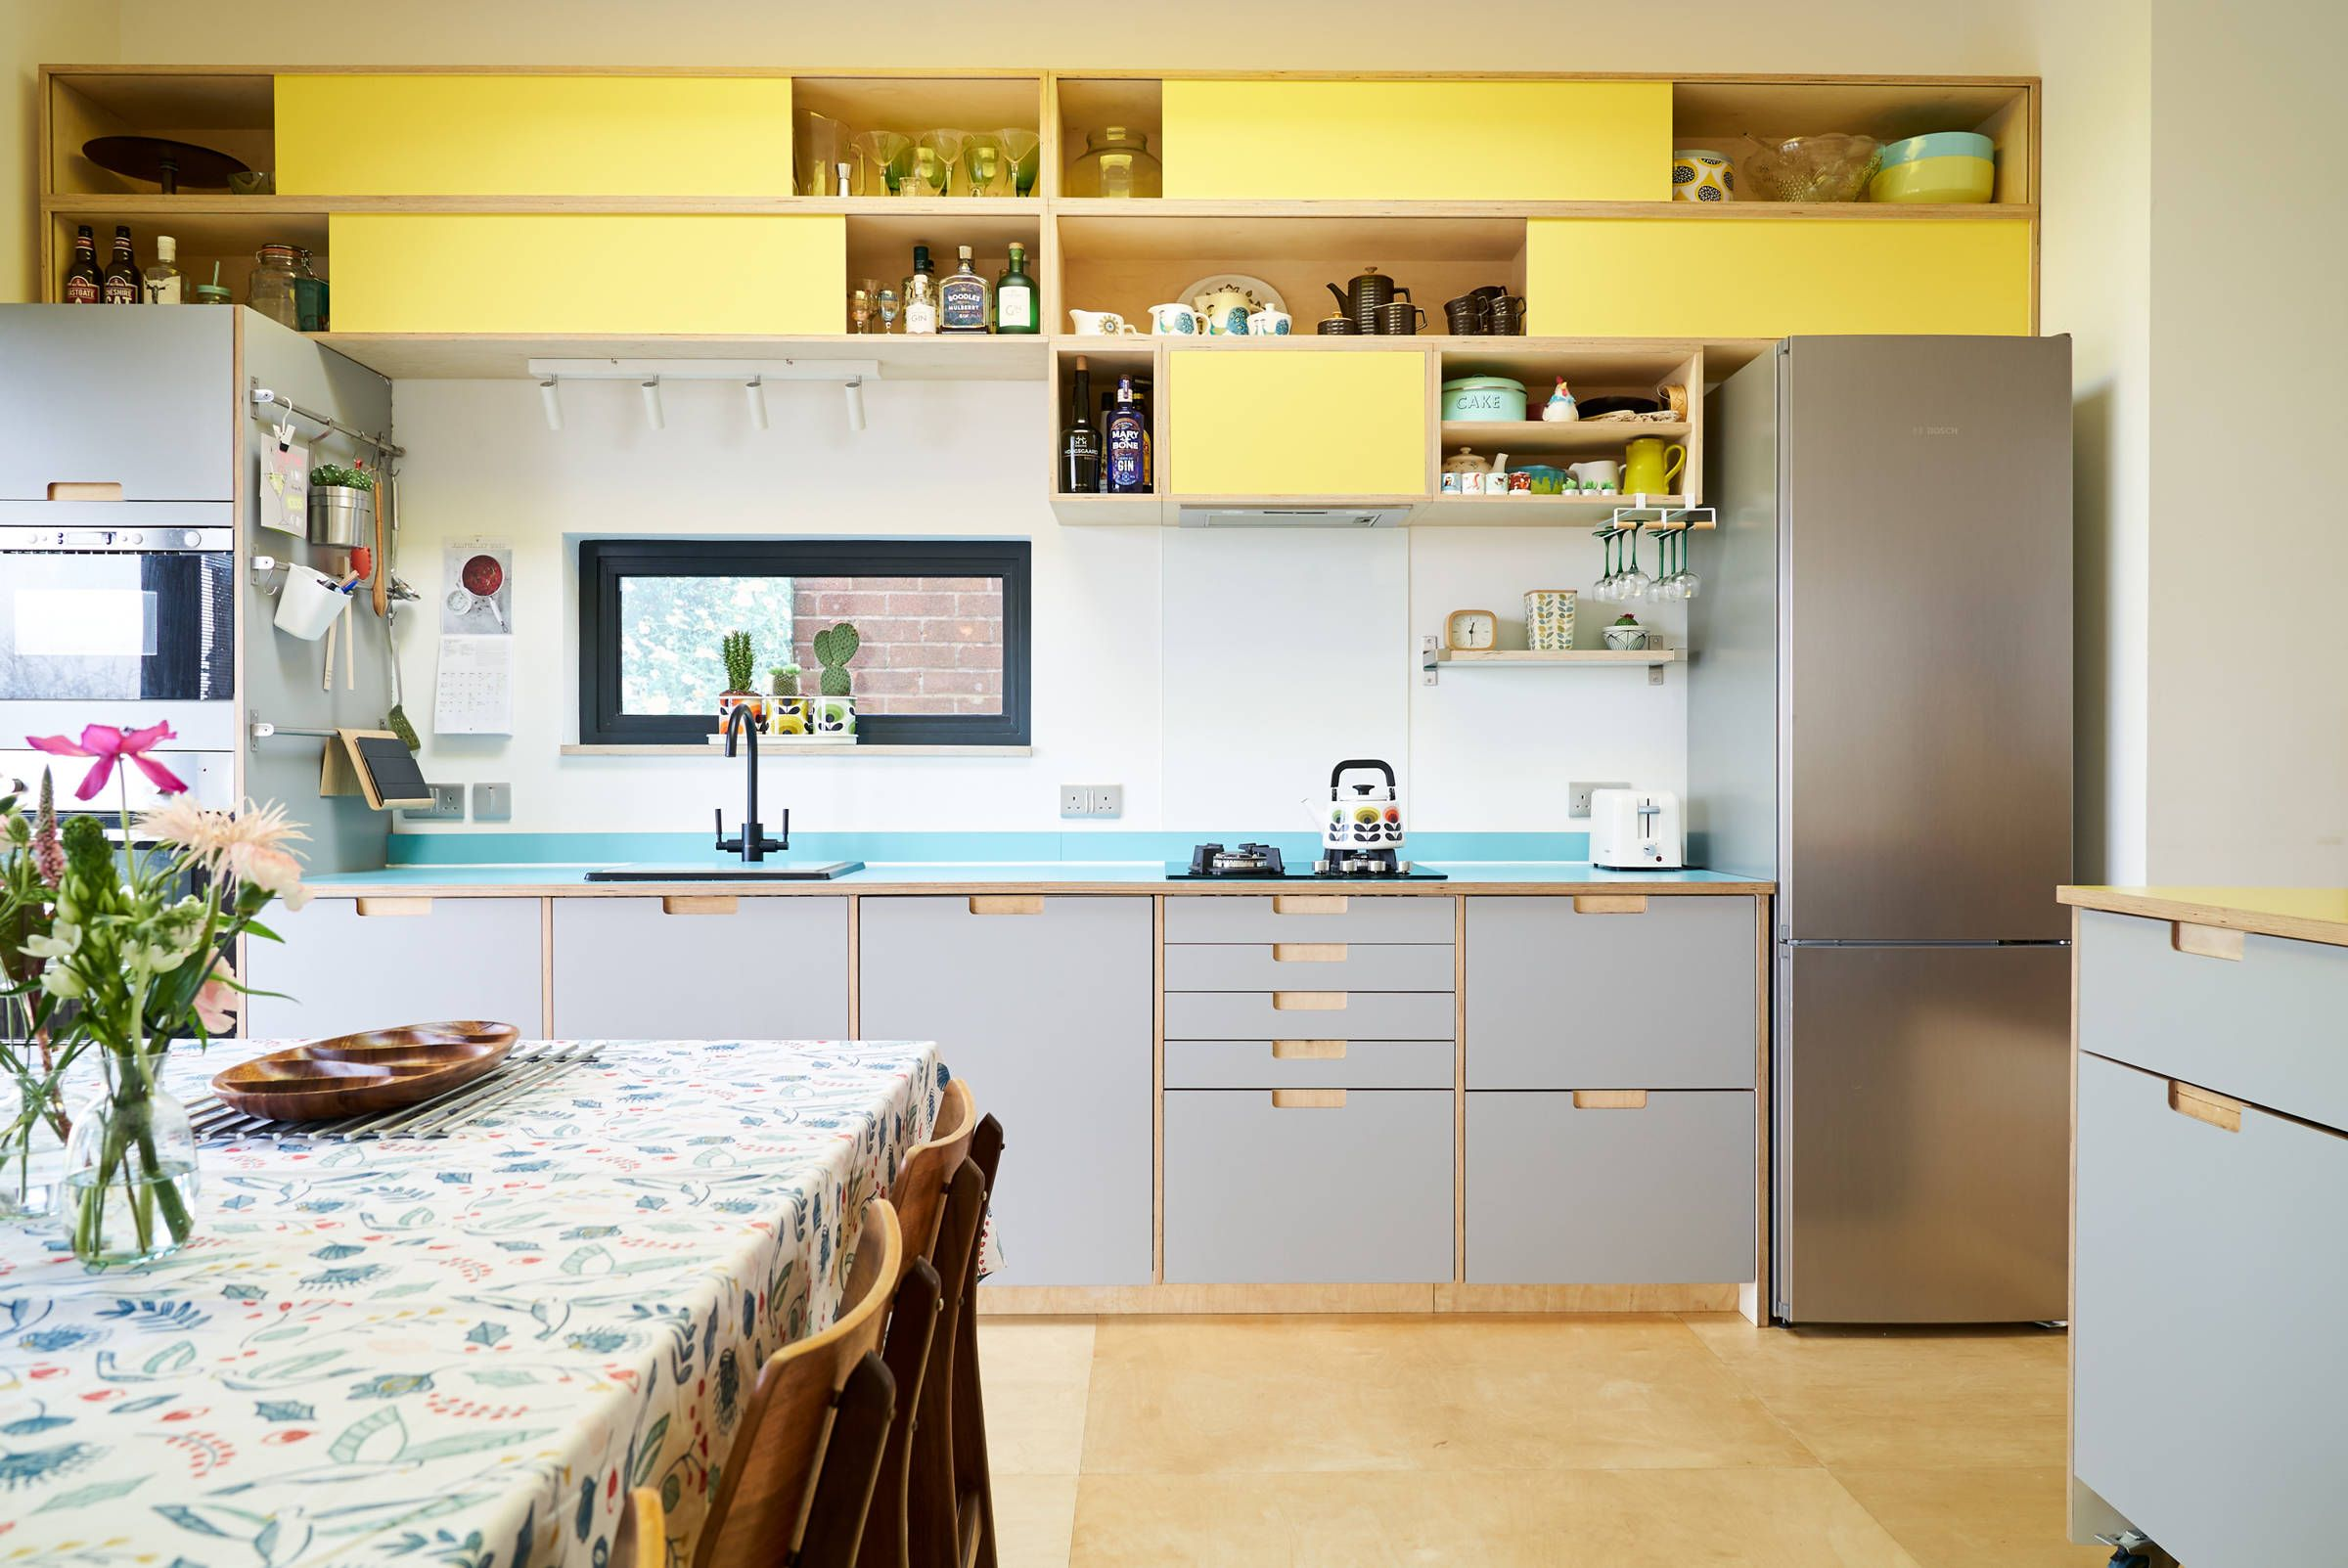 Formica kitchen with modular shelving system